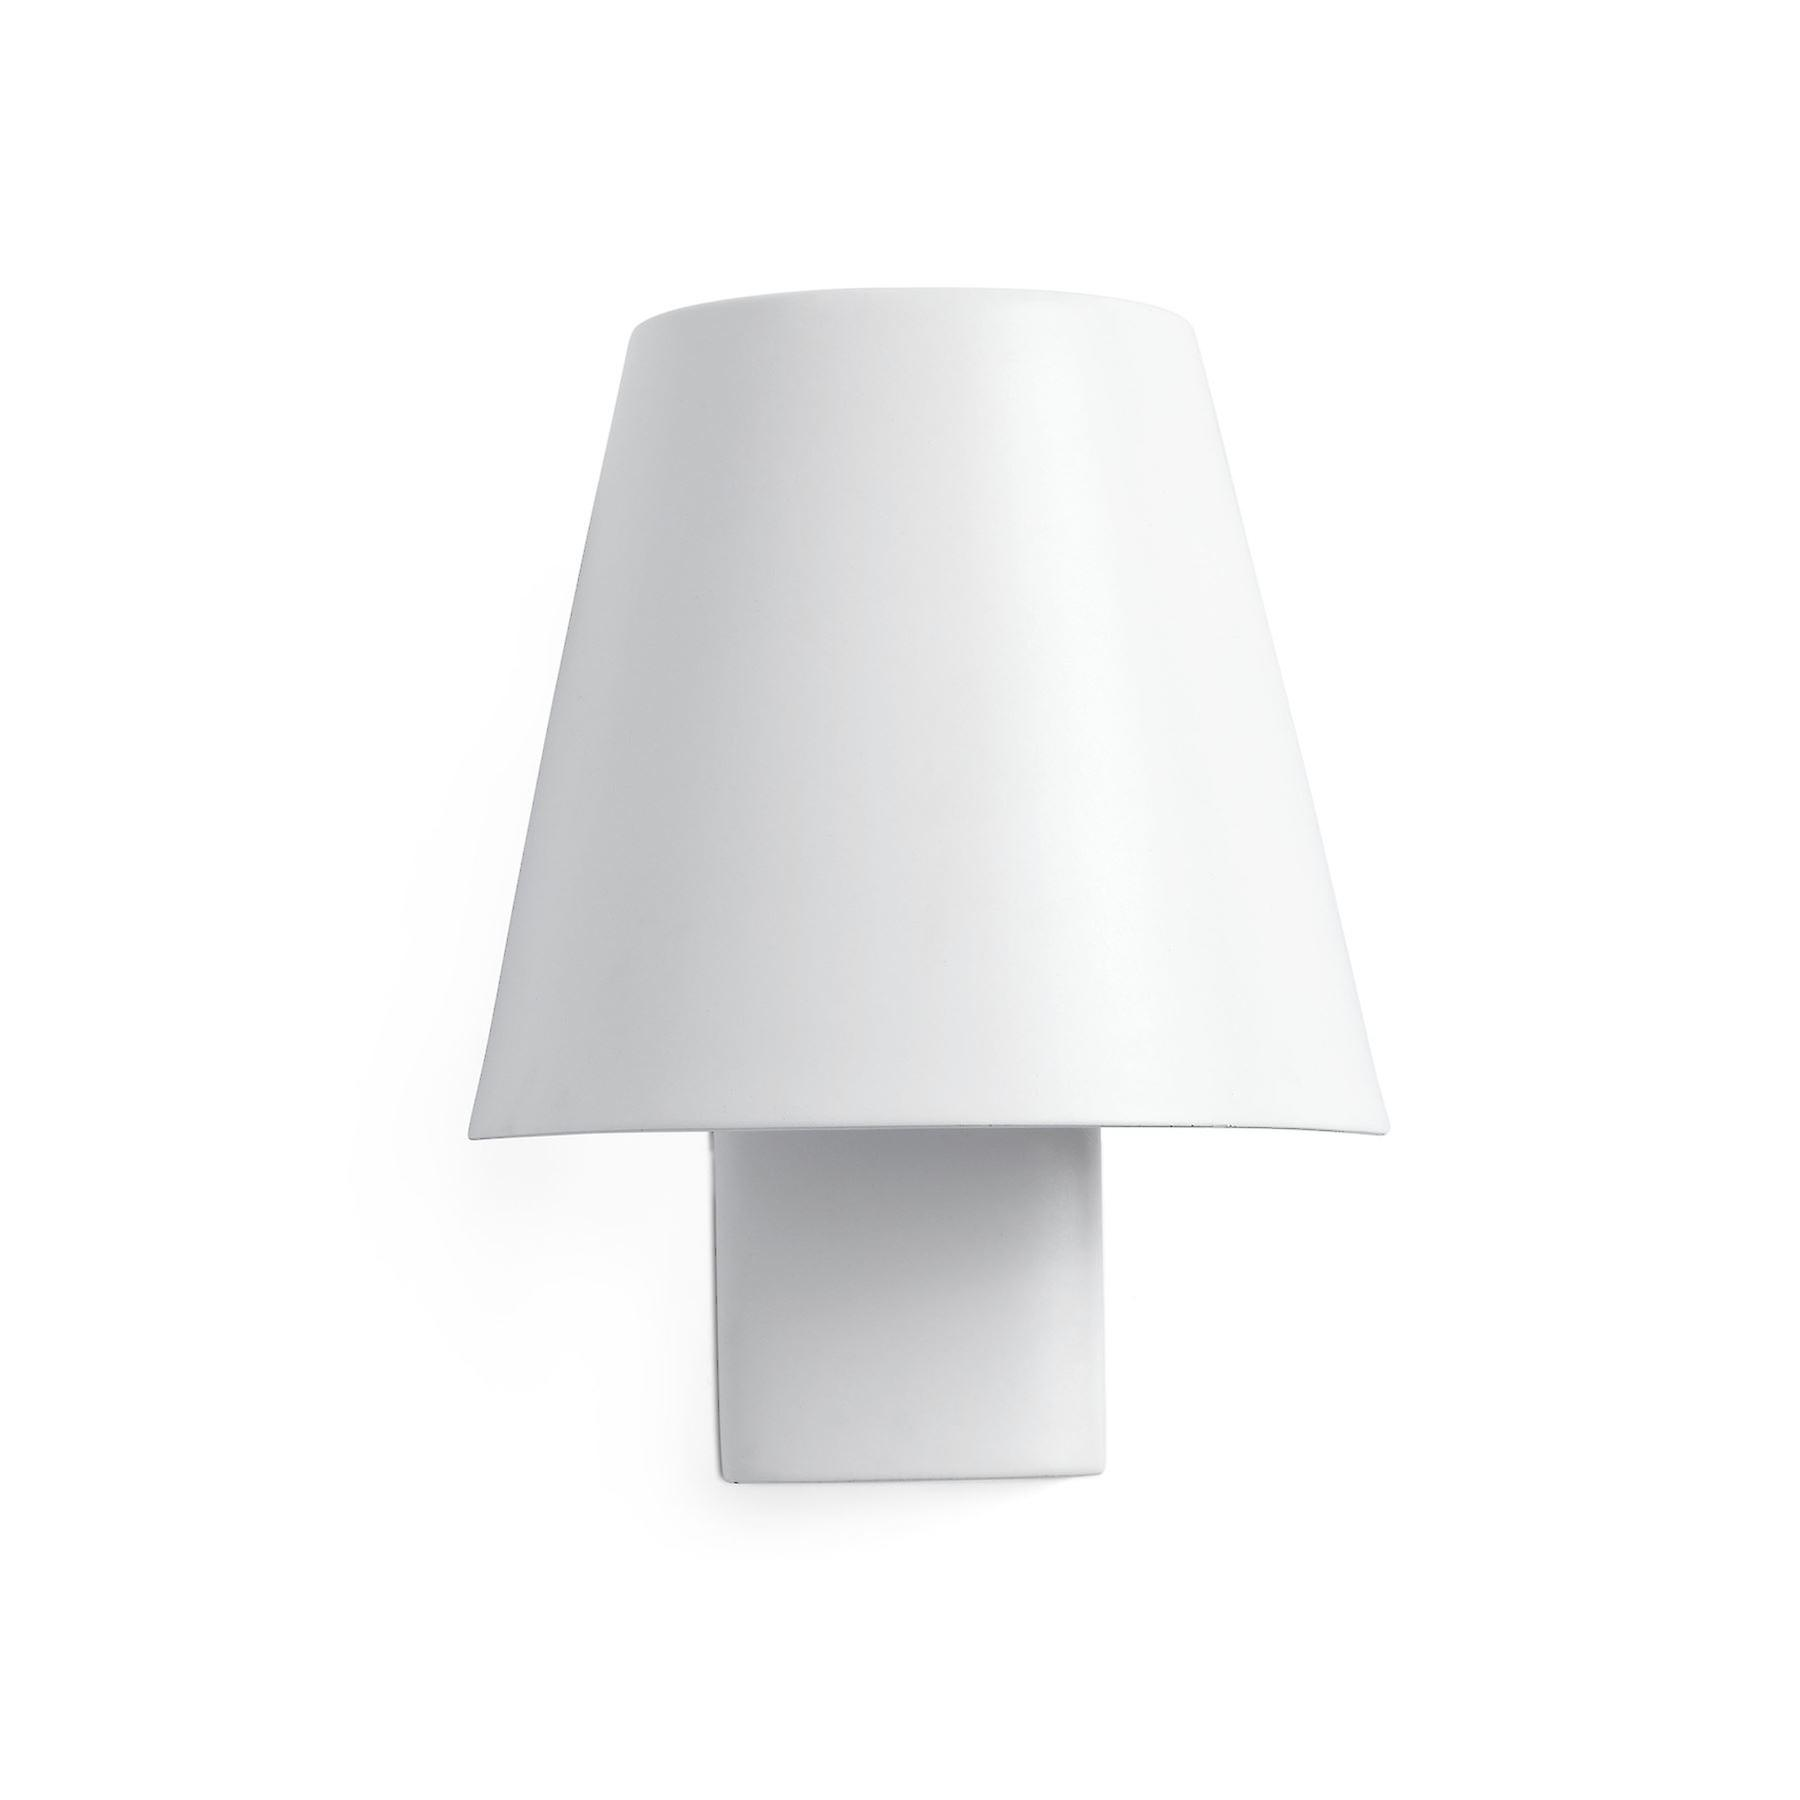 Faro - Le Petit blanc Adjustable LED Wall Lamp FARO62161